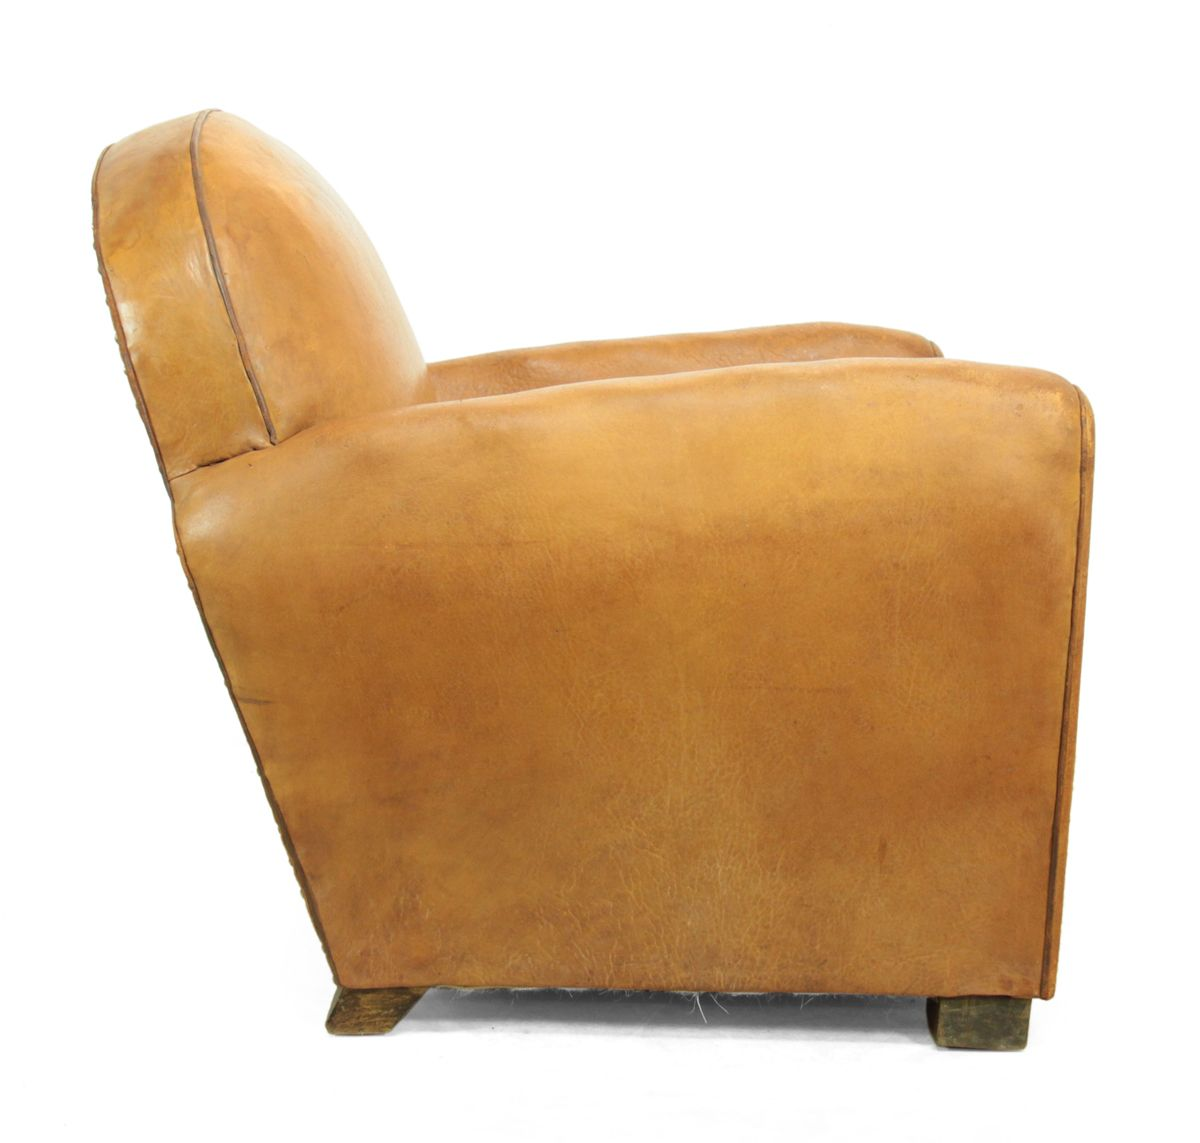 Vintage French Brown Leather Club Chair 1930s for sale at